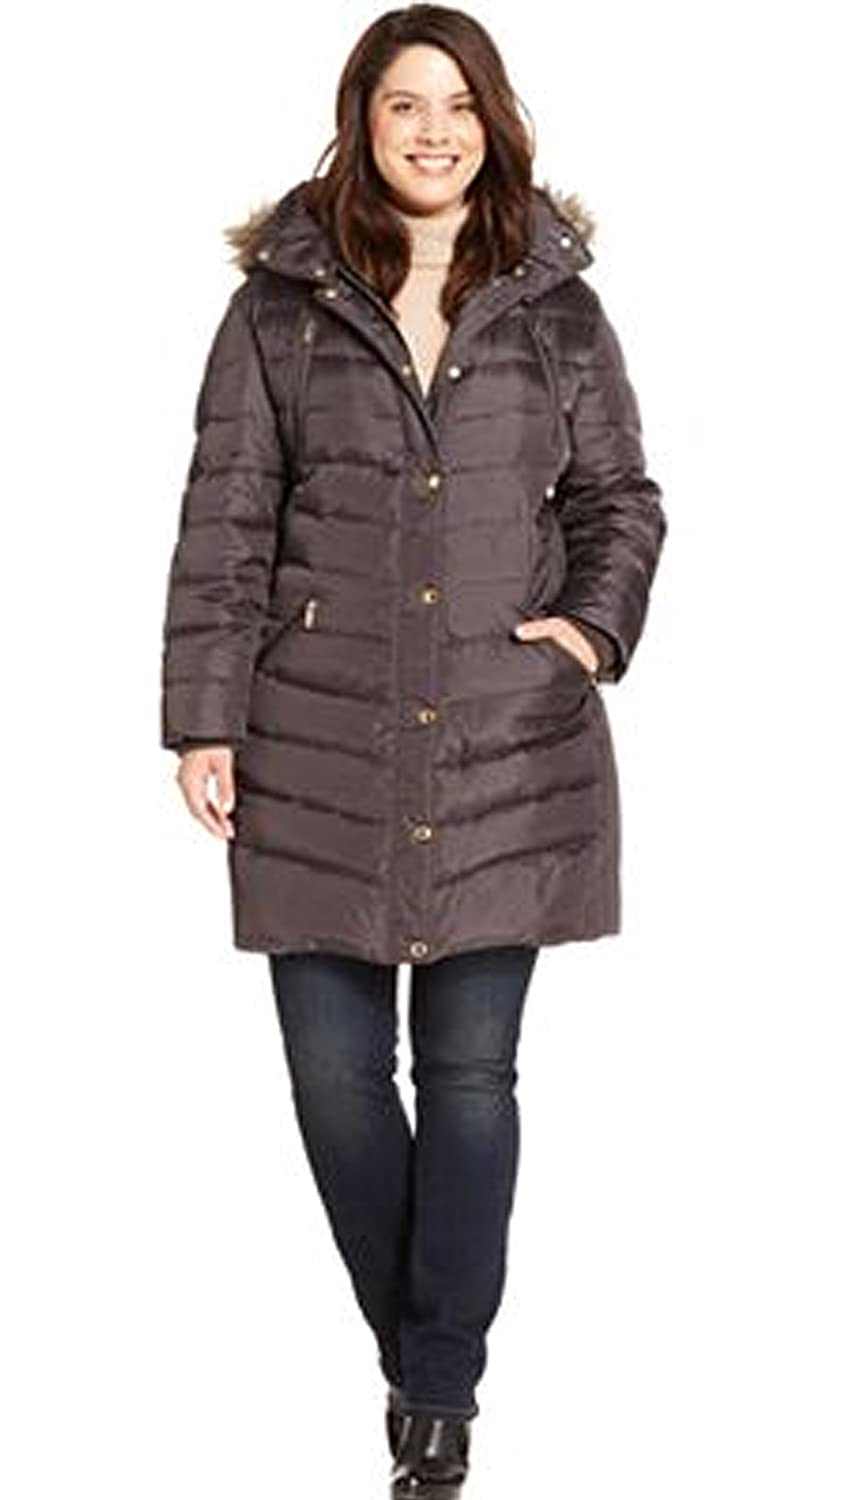 e1258c2dad538 Amazon.com  Michael Kors Plus Size Hooded Faux-fur-trim Puffer Coat (3X)   Clothing